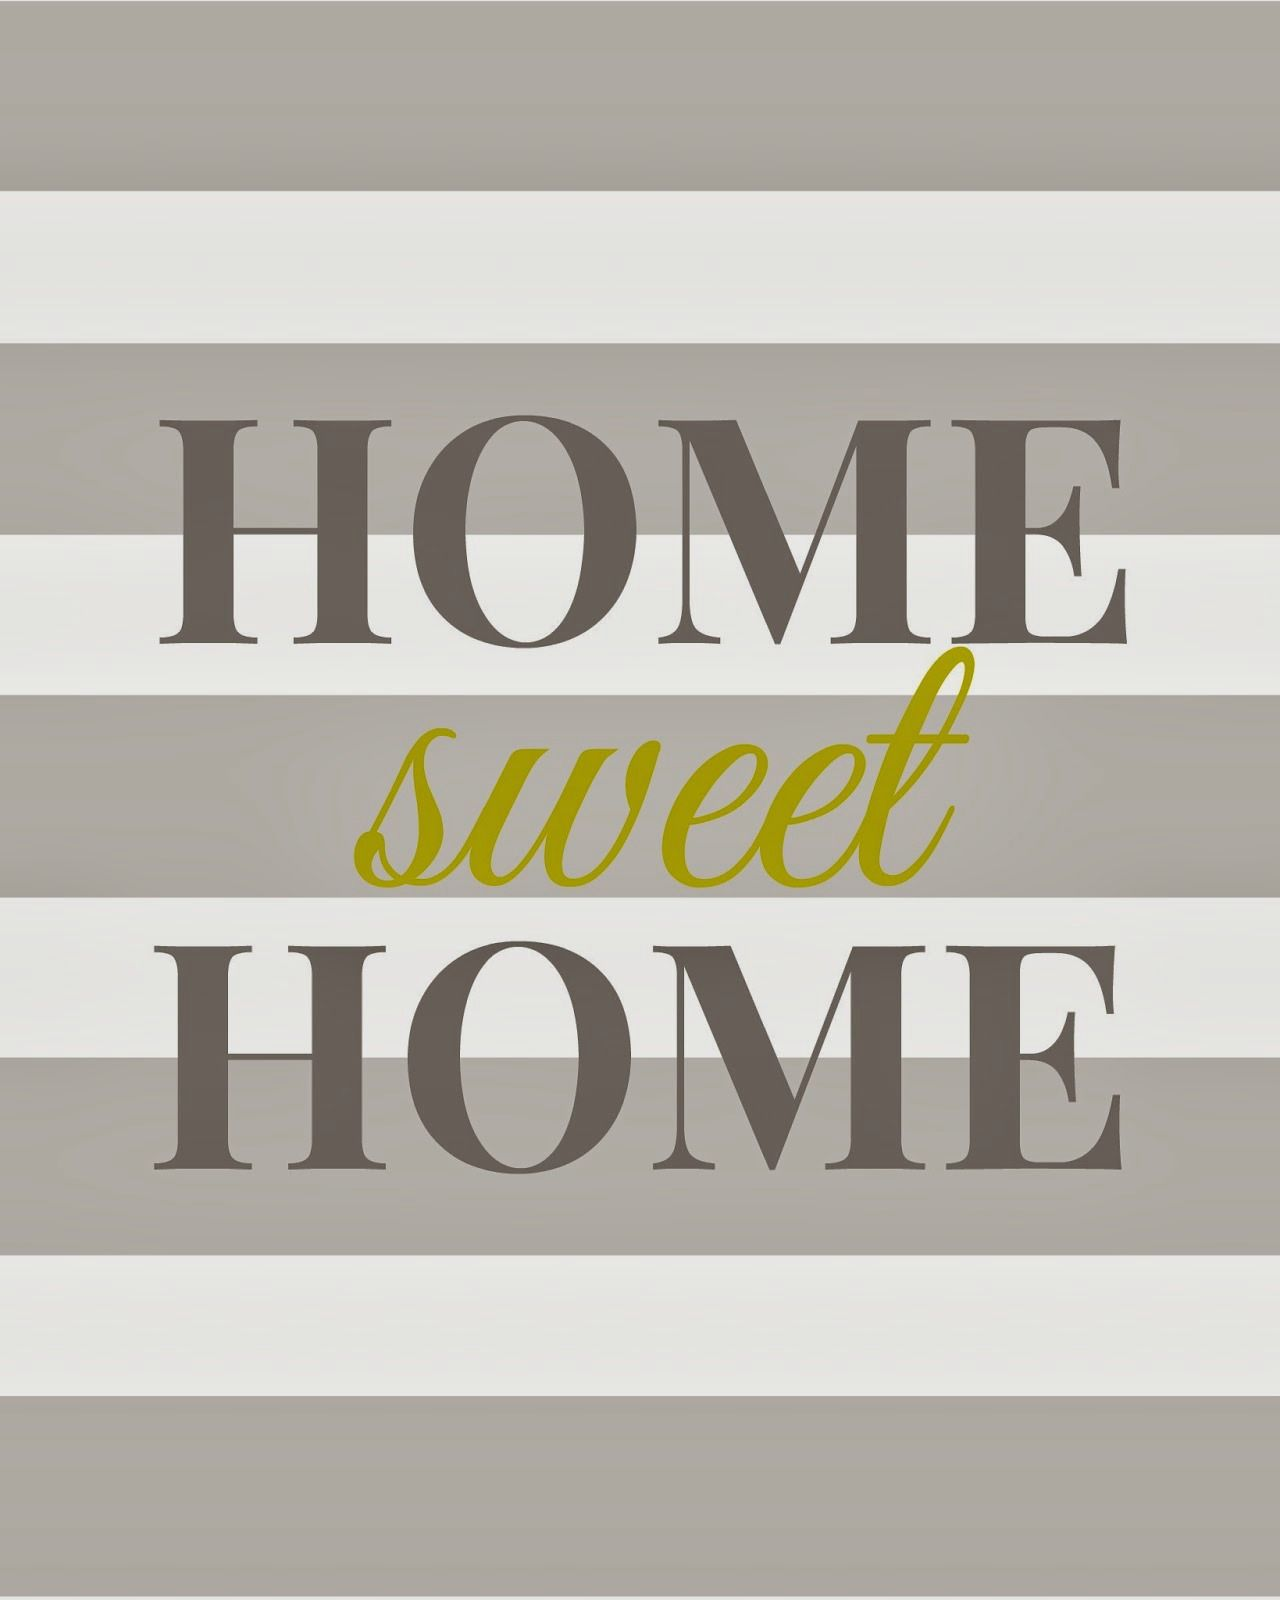 photo relating to Home Sweet Home Printable titled Dwelling Cute Dwelling - Free of charge Printable Printables + Fonts Residence